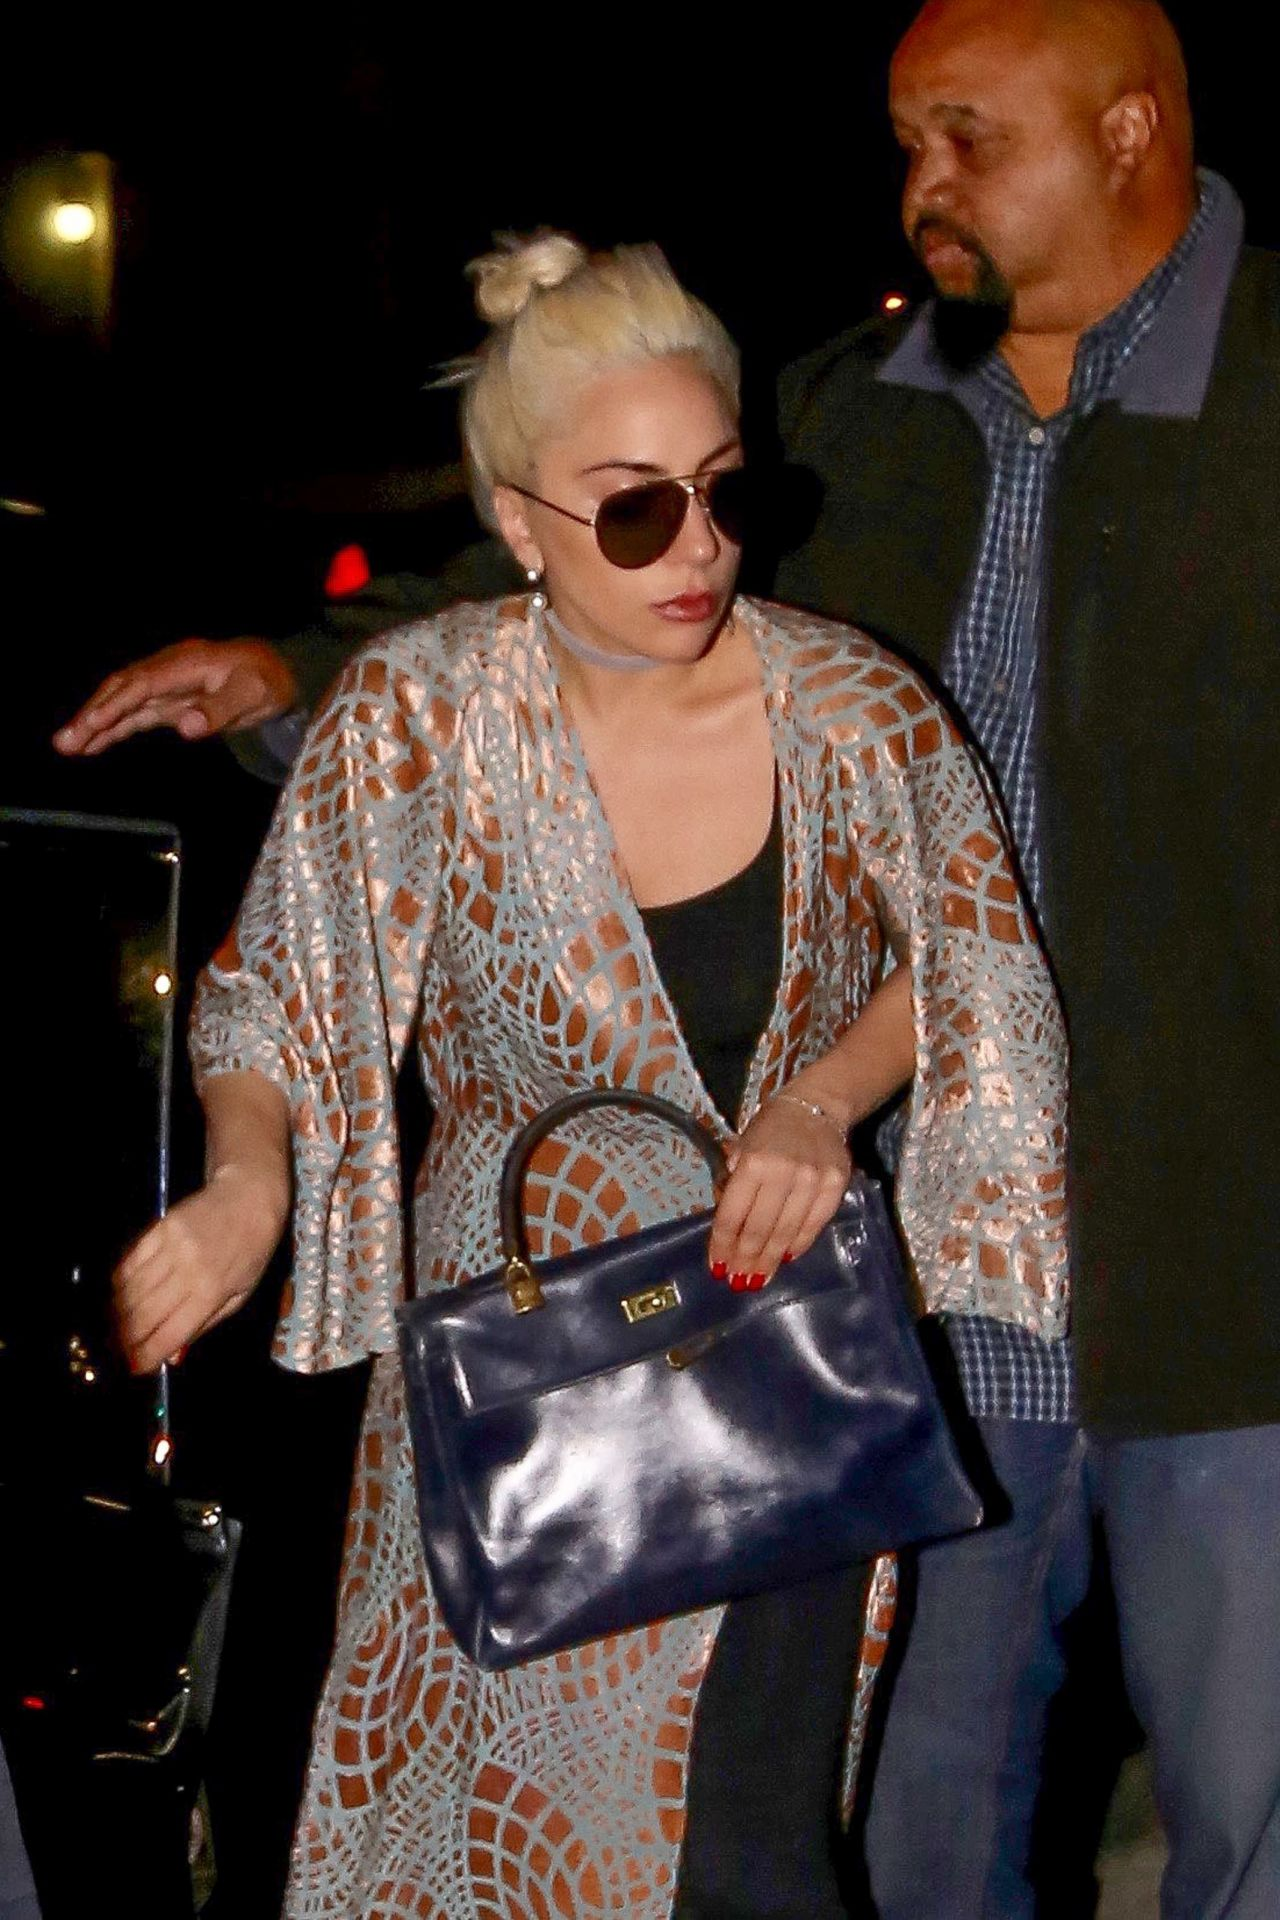 Lady gaga night time out fashion beverly hills nude (25 photos), Paparazzi Celebrity foto